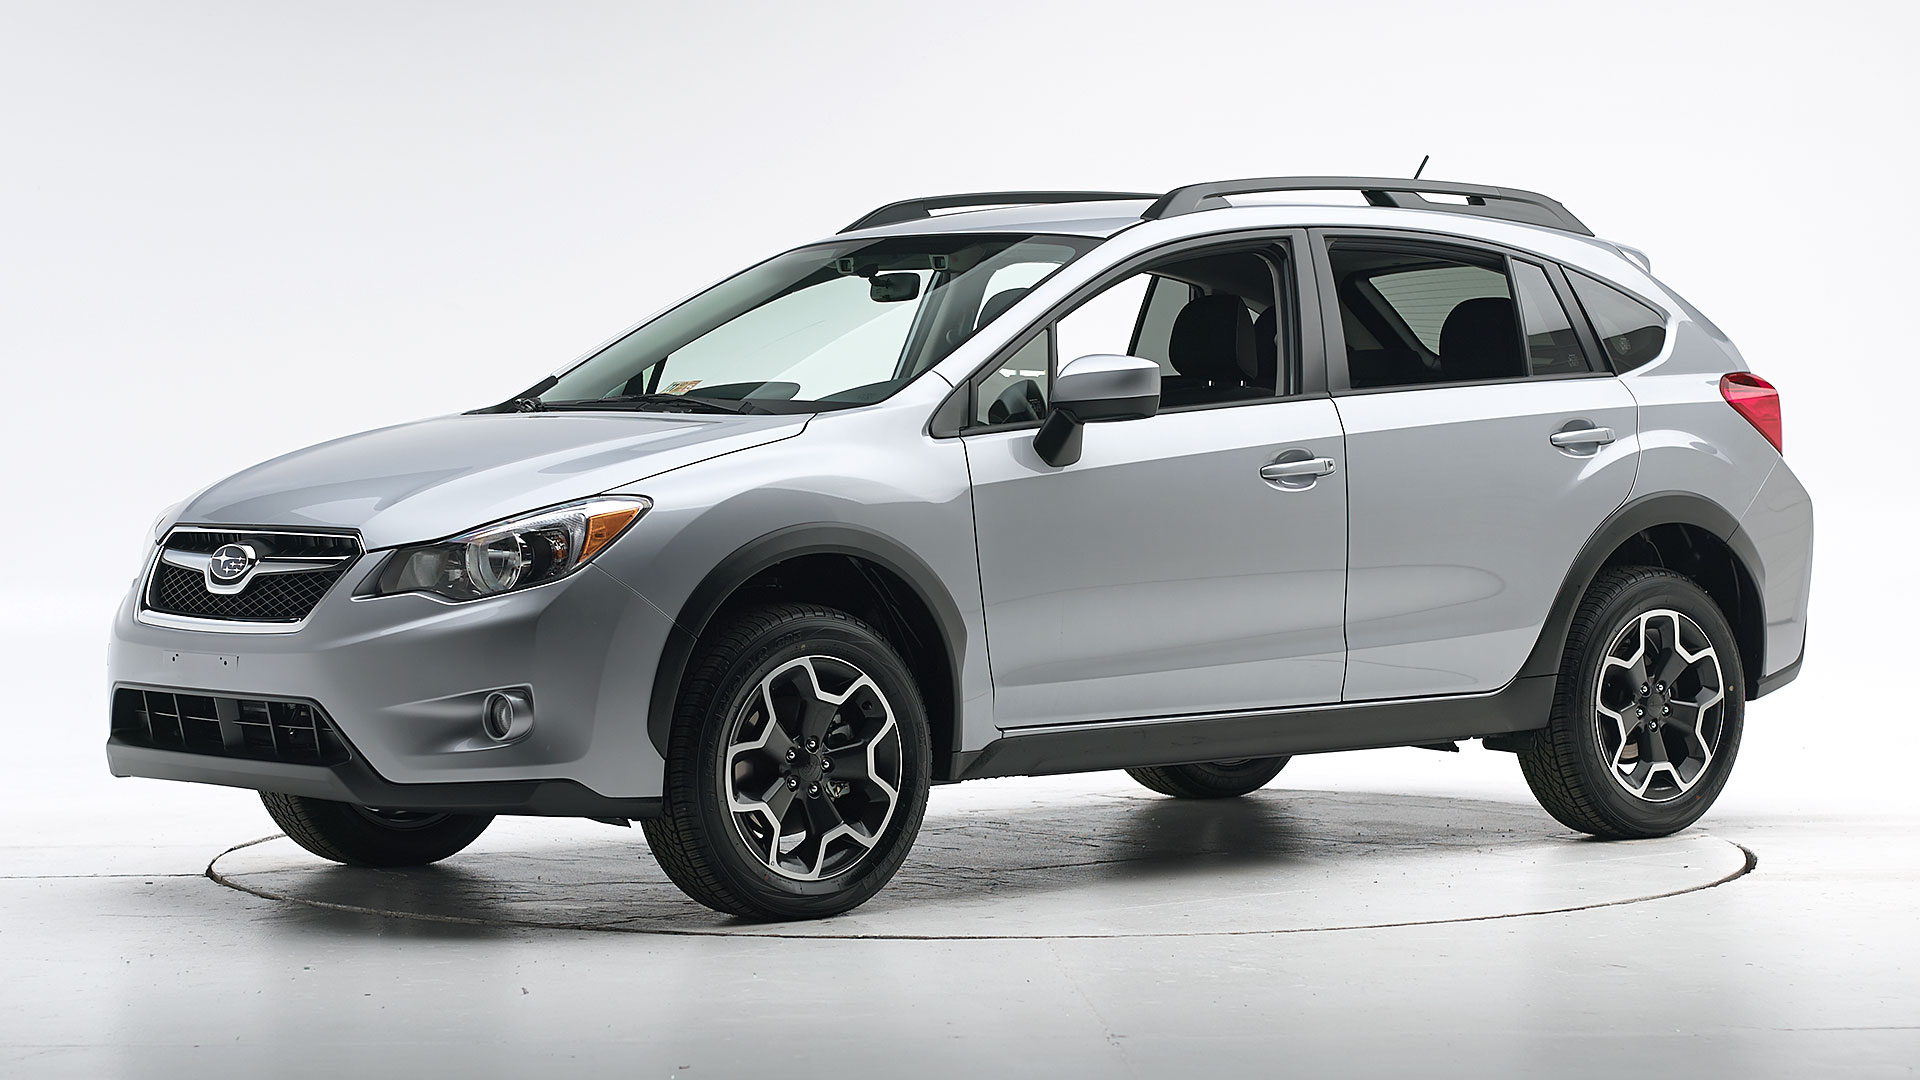 2016 Subaru Crosstrek 4-door wagon